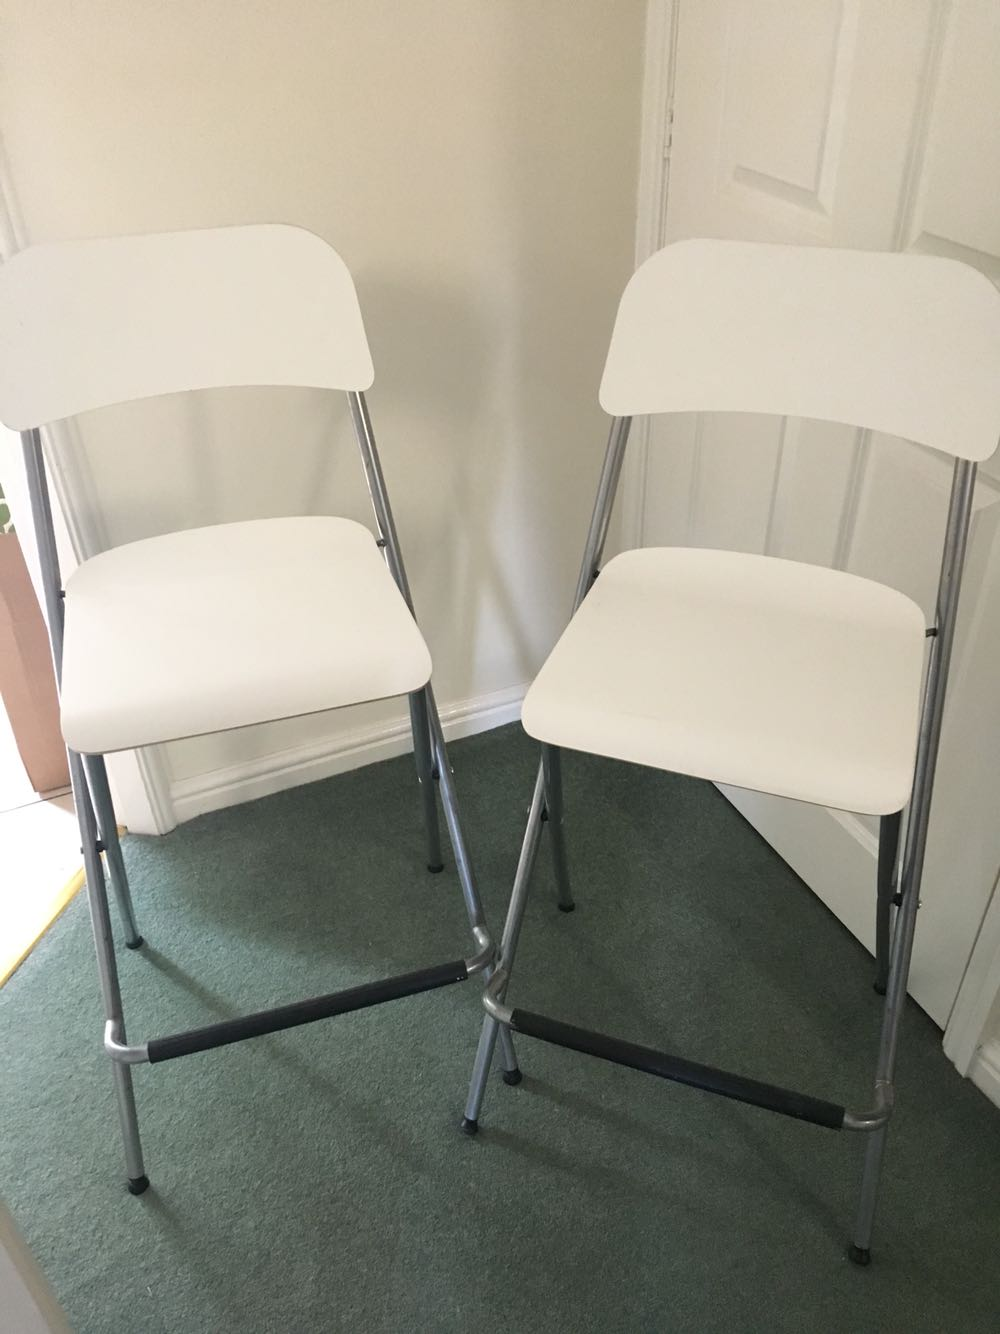 Second Hand Furniture For Sale Glasgow Tables Chairs Second Hand Househol